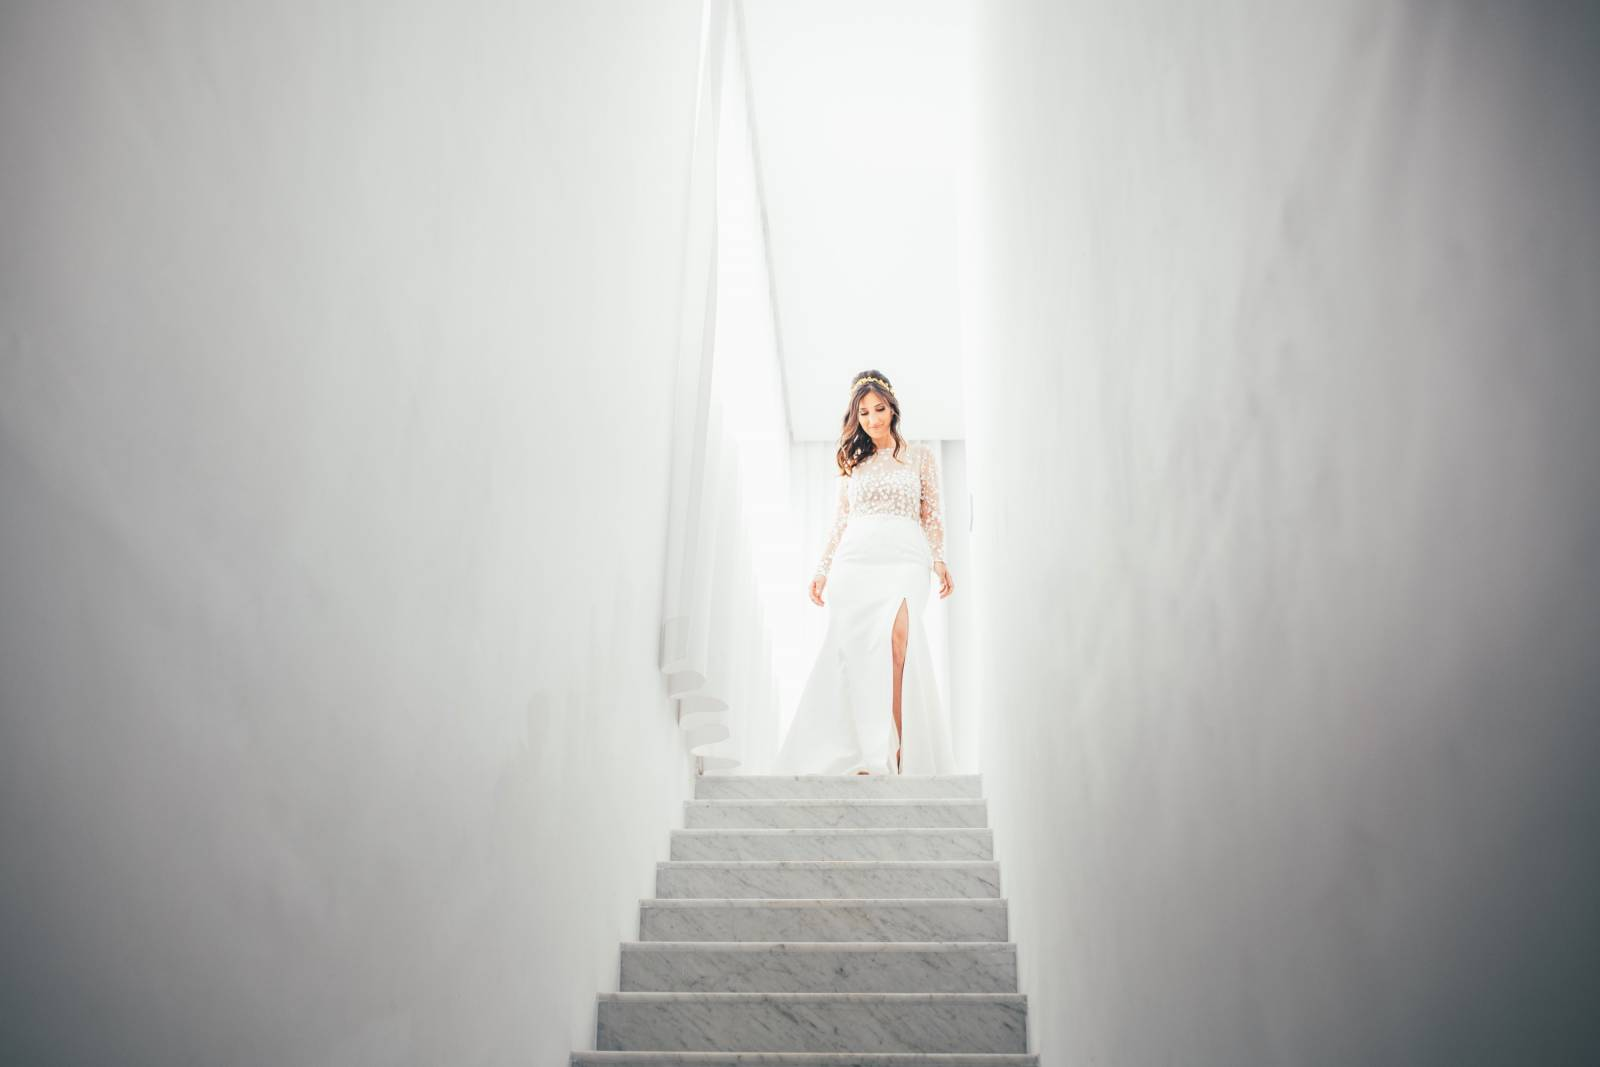 Speaking Through Silence Photography - Huwelijksfotograaf - House of Weddings - 35